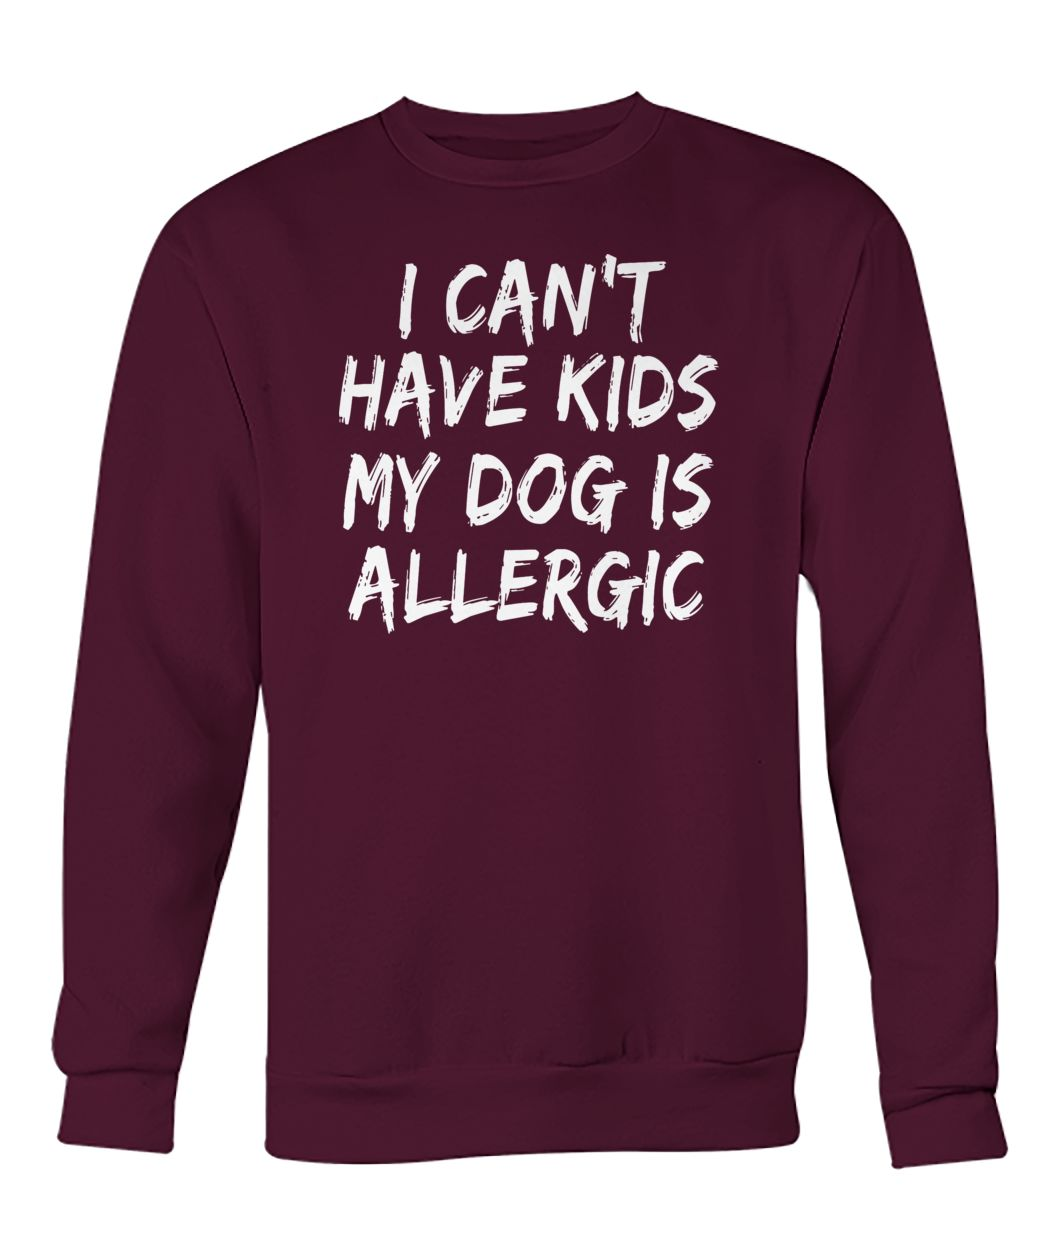 I can't have kids my dog is allergic crew neck sweatshirt